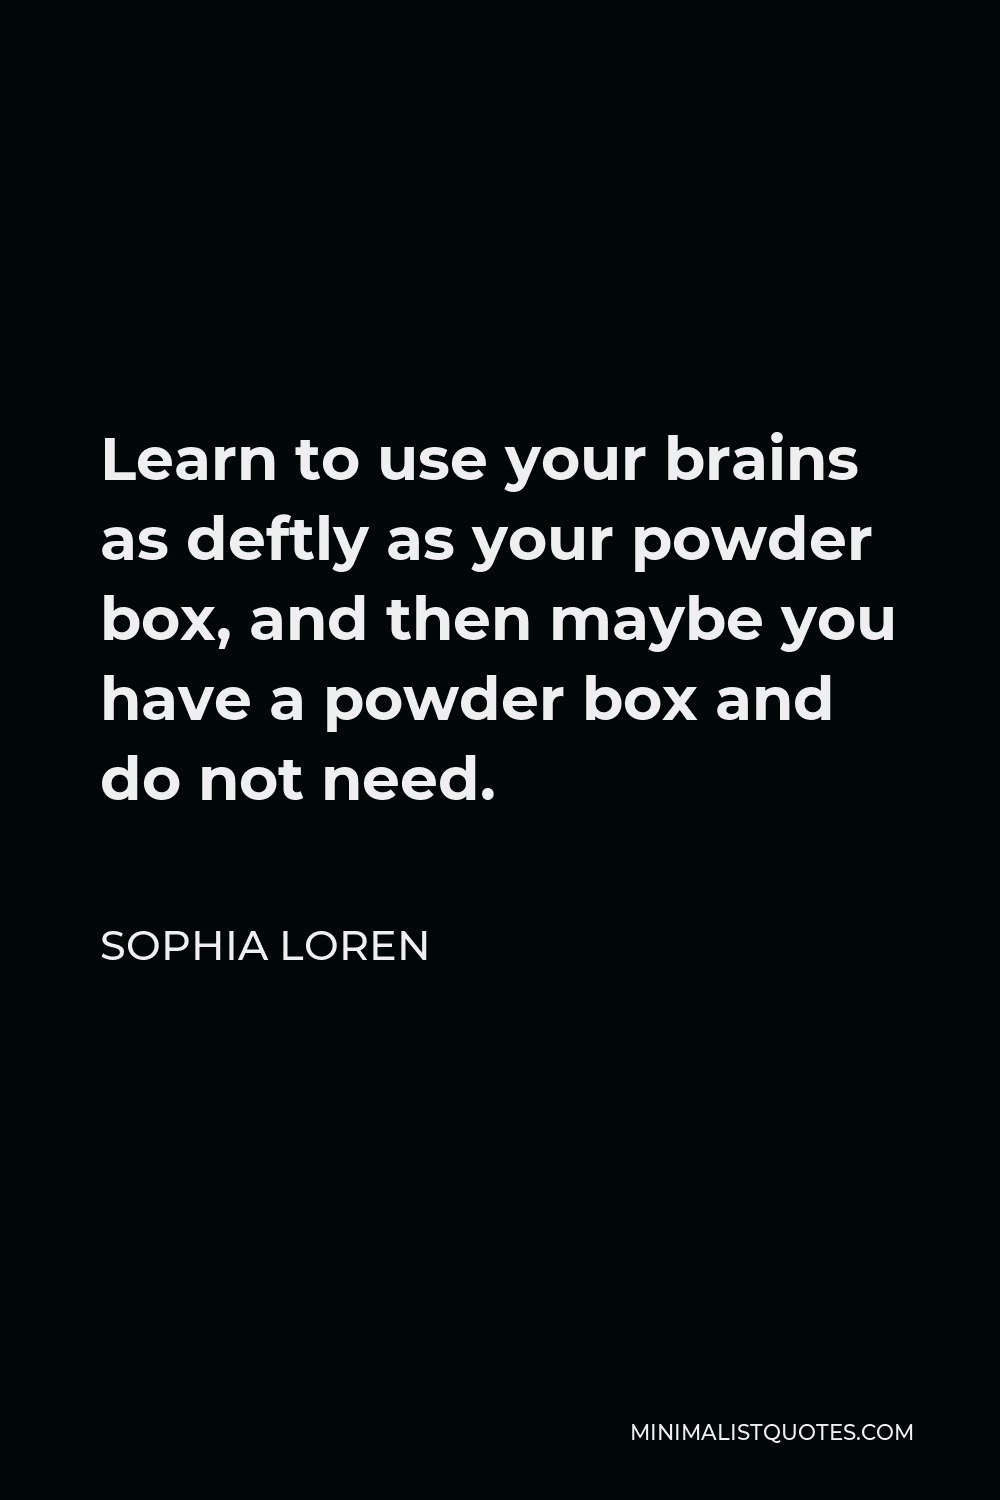 Sophia Loren Quote - Learn to use your brains as deftly as your powder box, and then maybe you have a powder box and do not need.